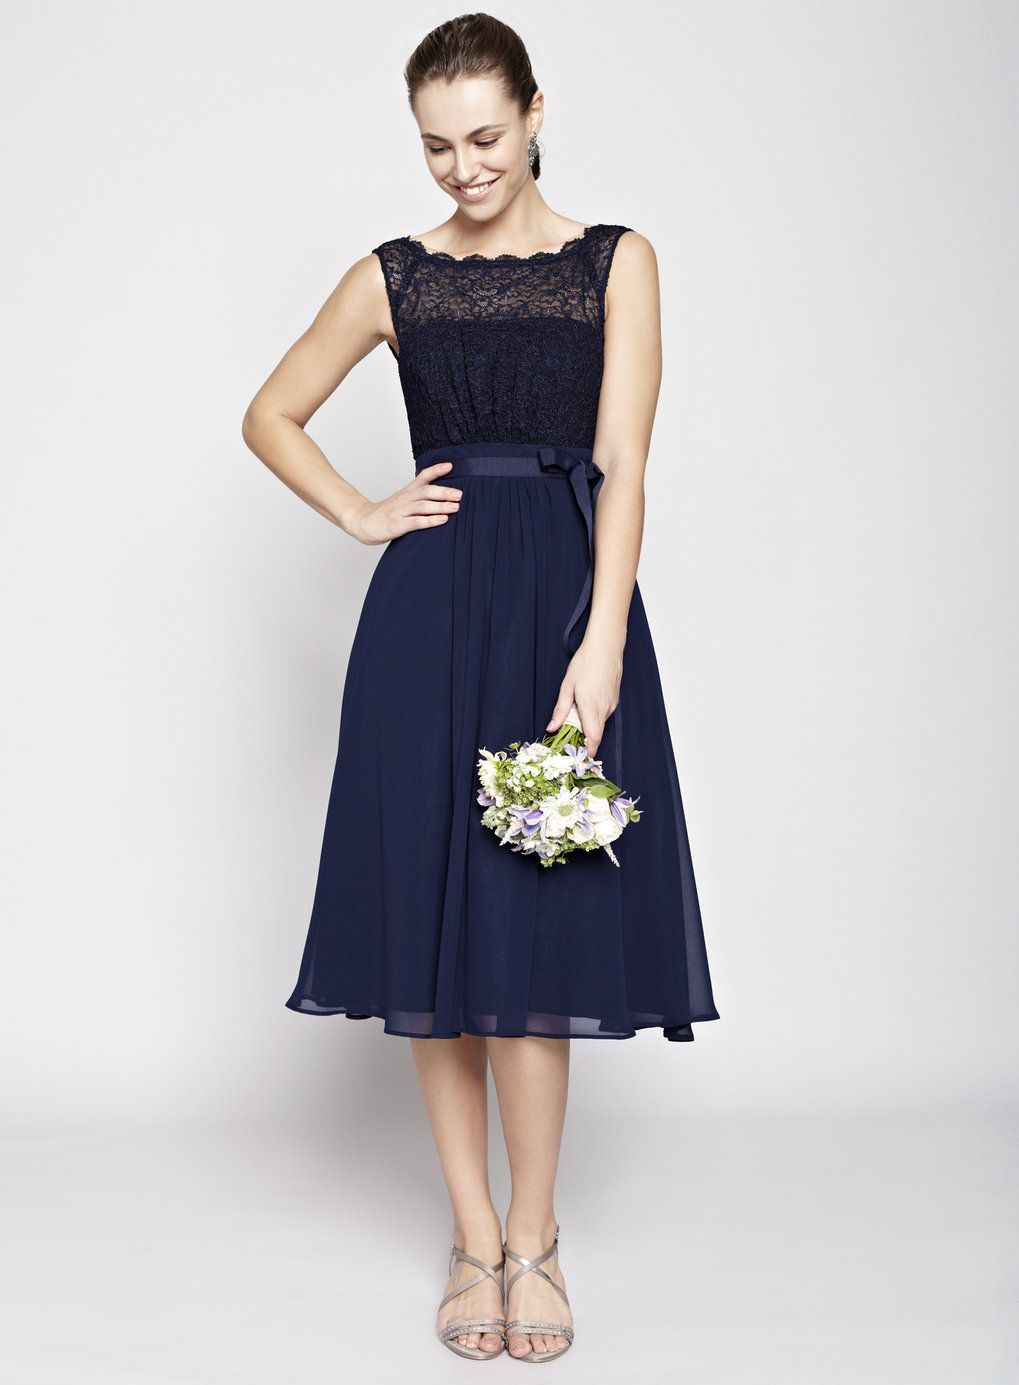 Navy chloe bridesmaid dress bhs dresses pinterest bhs navy chloe bridesmaid dress bhs ombrellifo Image collections